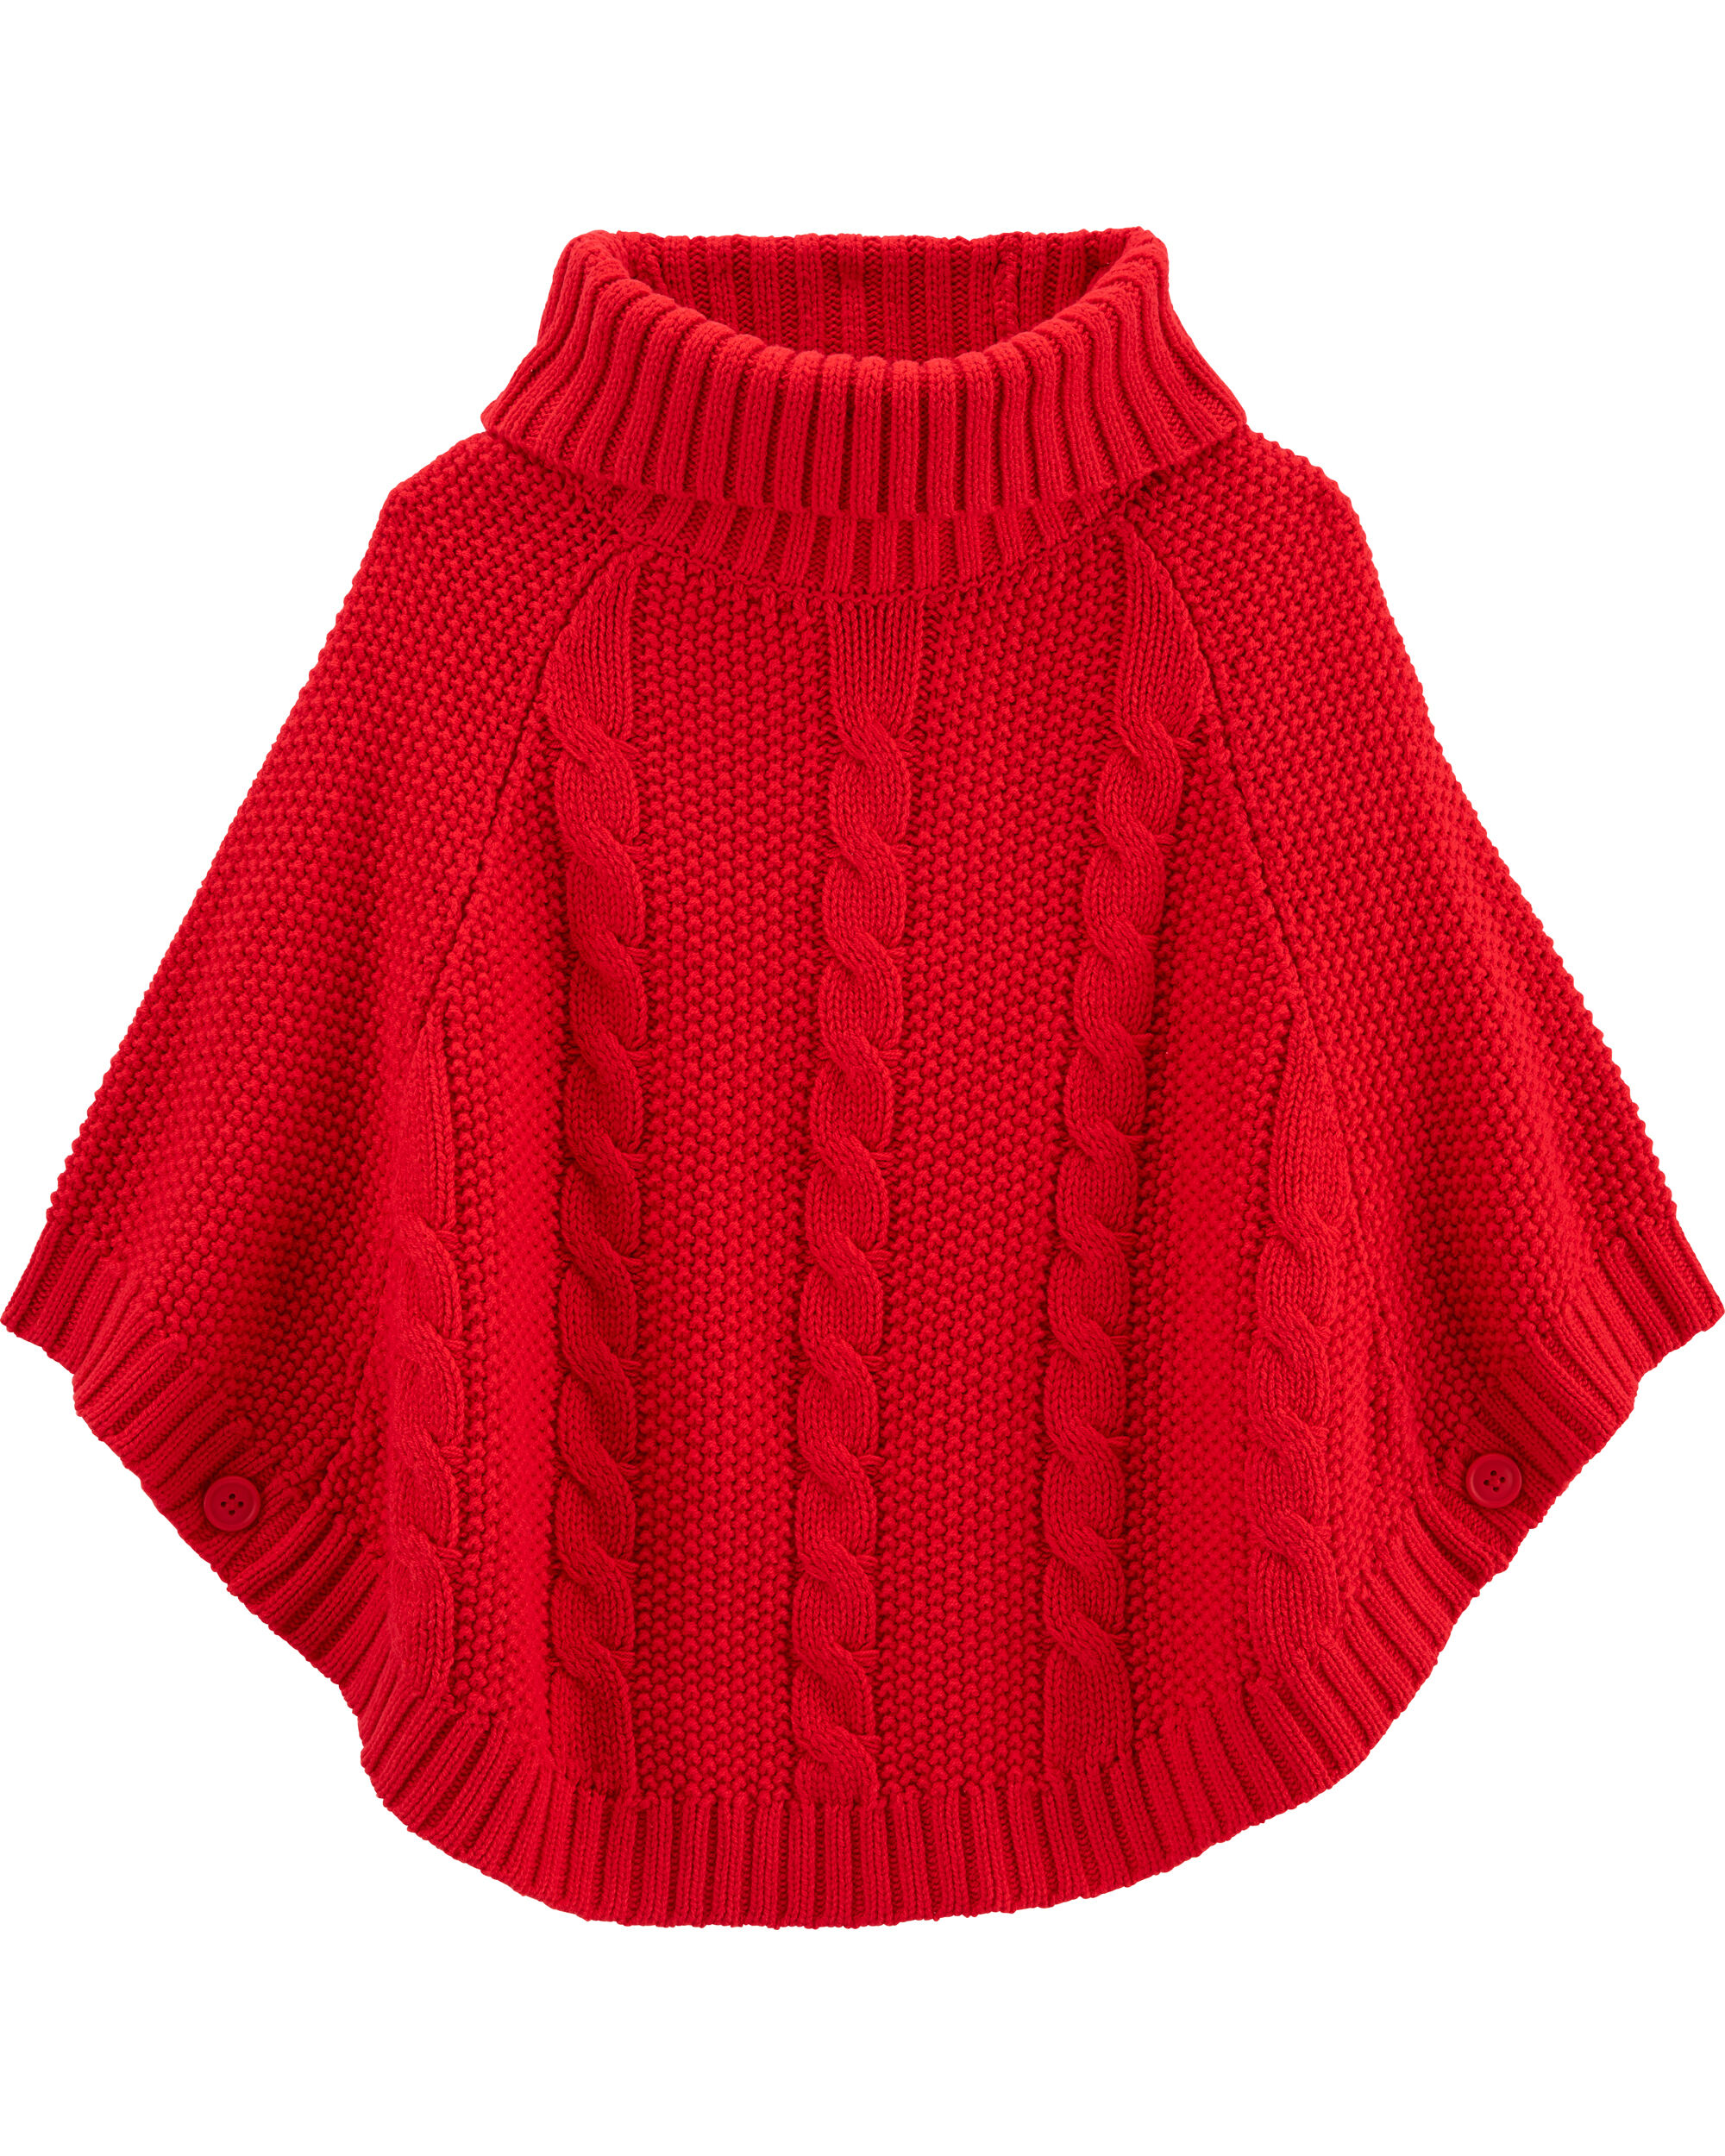 Girl Sweaters & Hoodies: Sweaters & Pullovers   Carter's